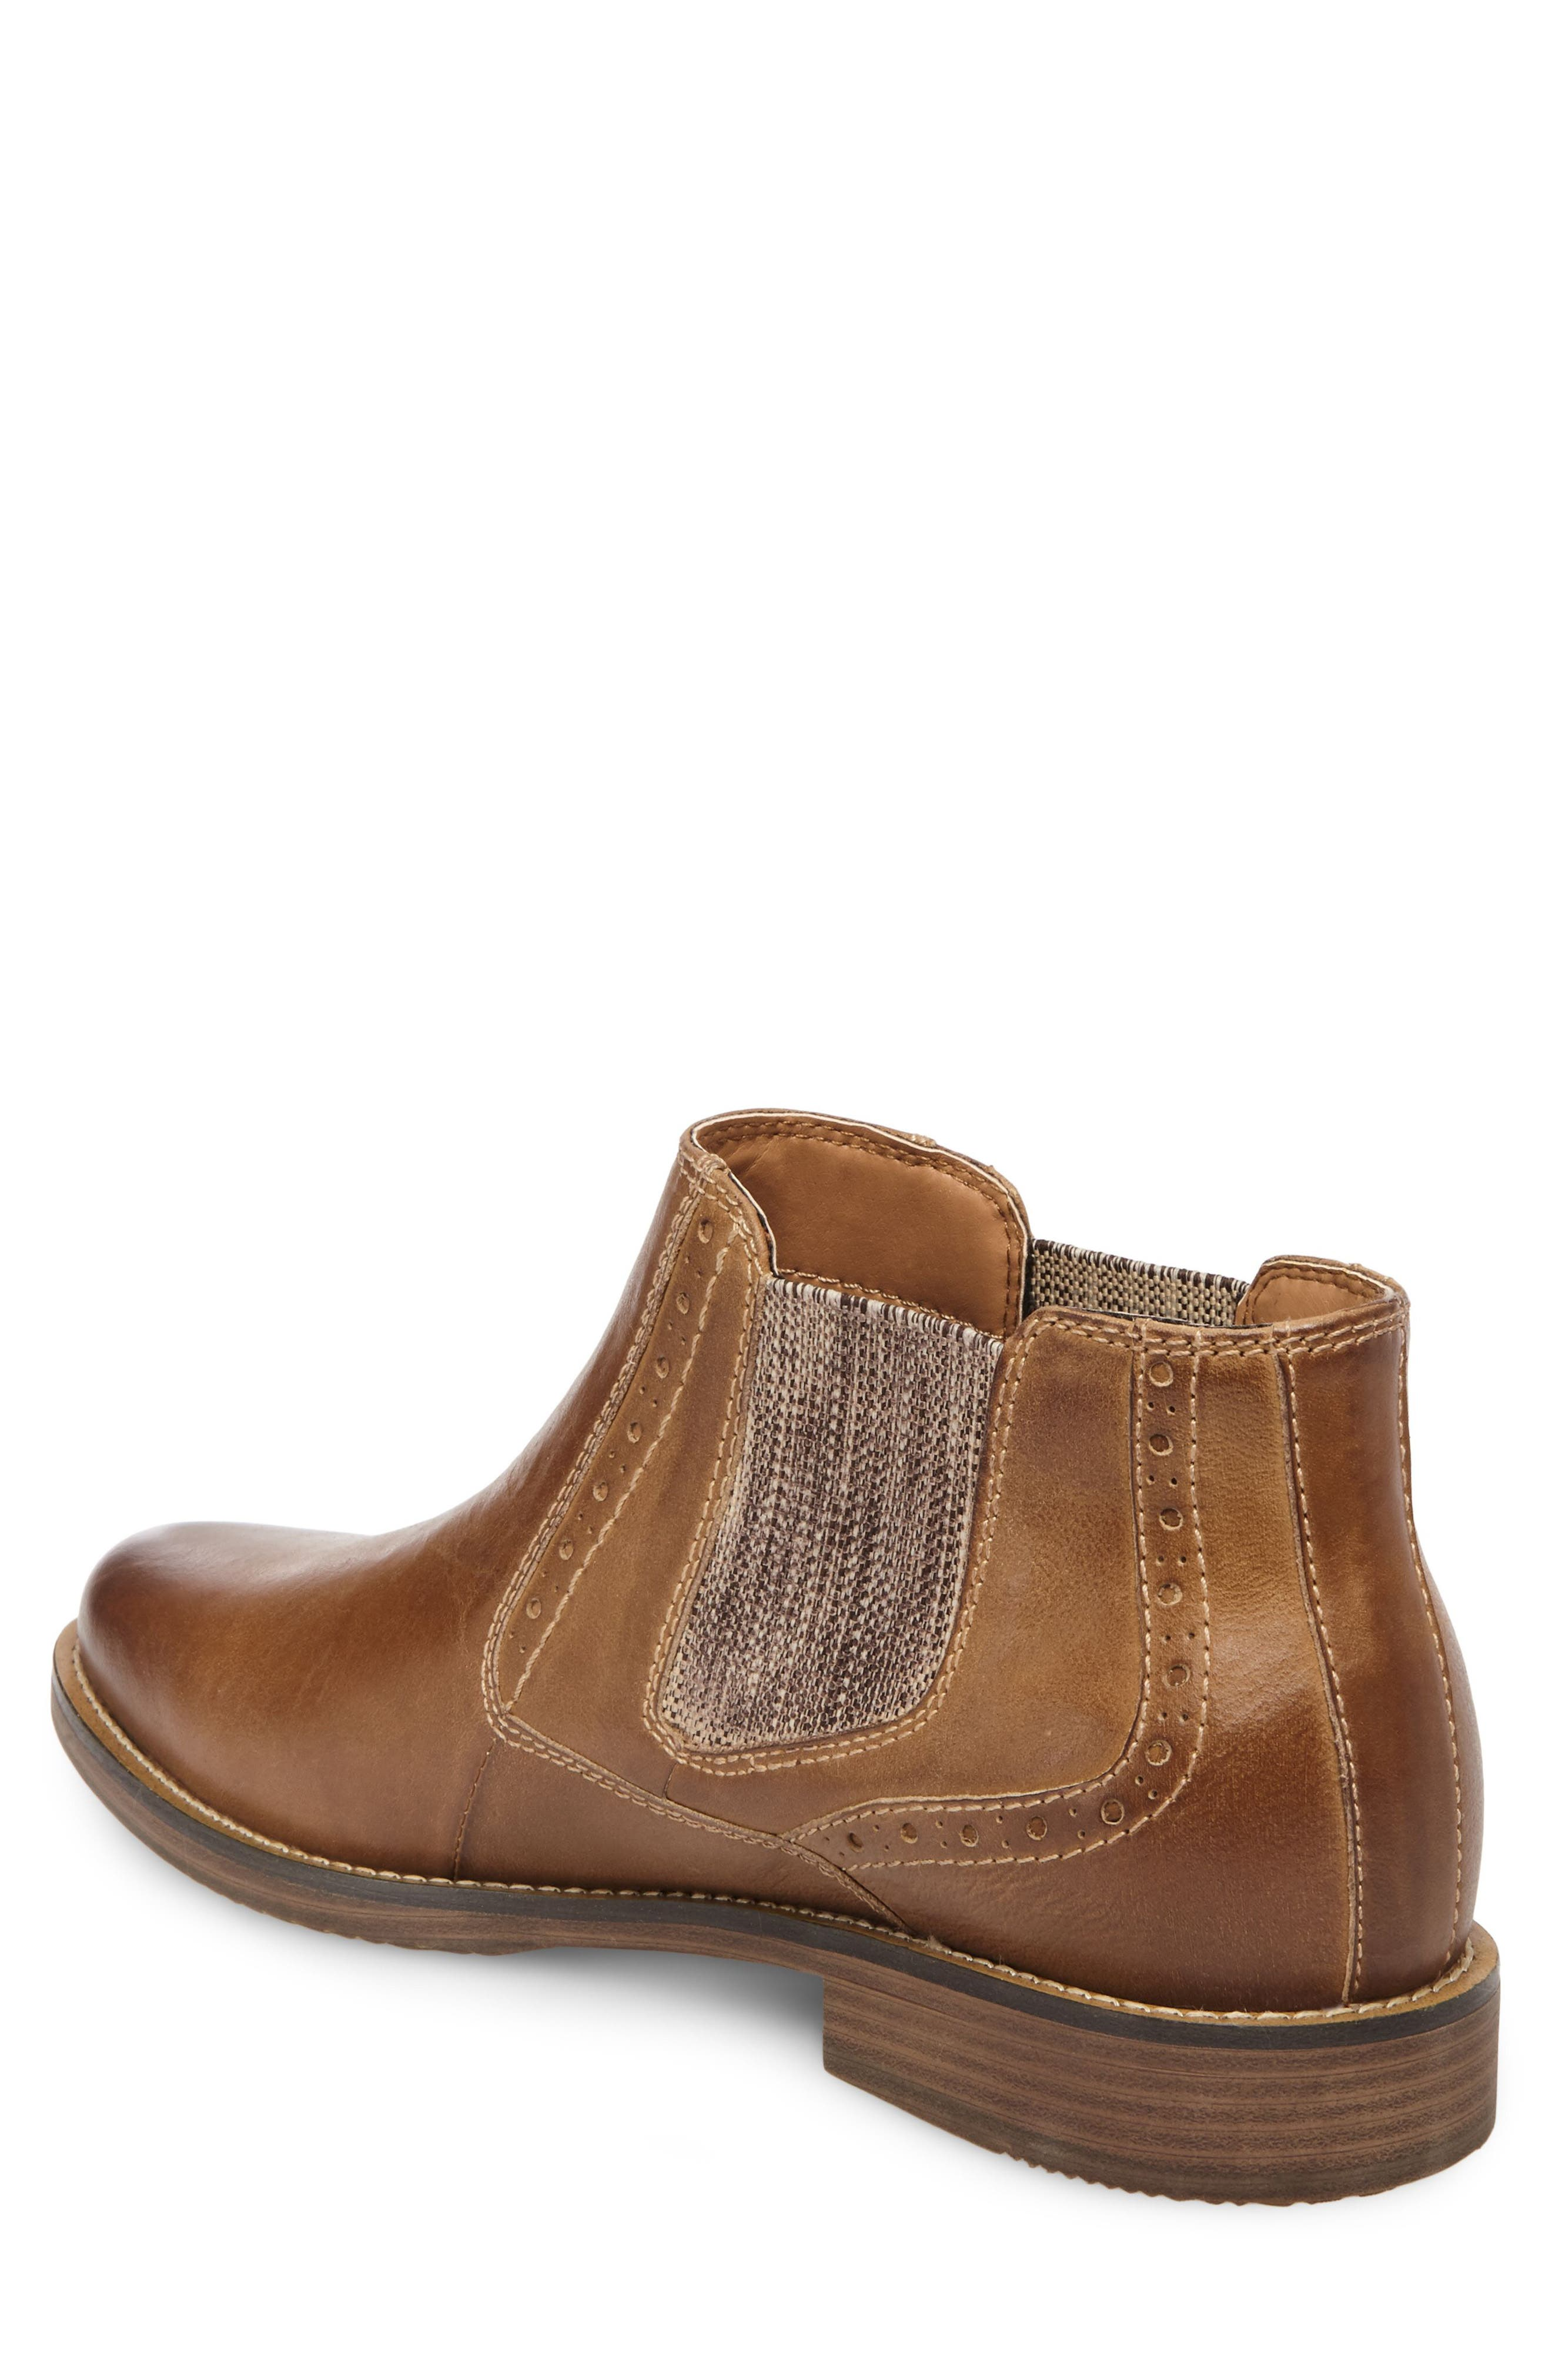 Paxton Chelsea Boot,                             Alternate thumbnail 2, color,                             Camel Leather